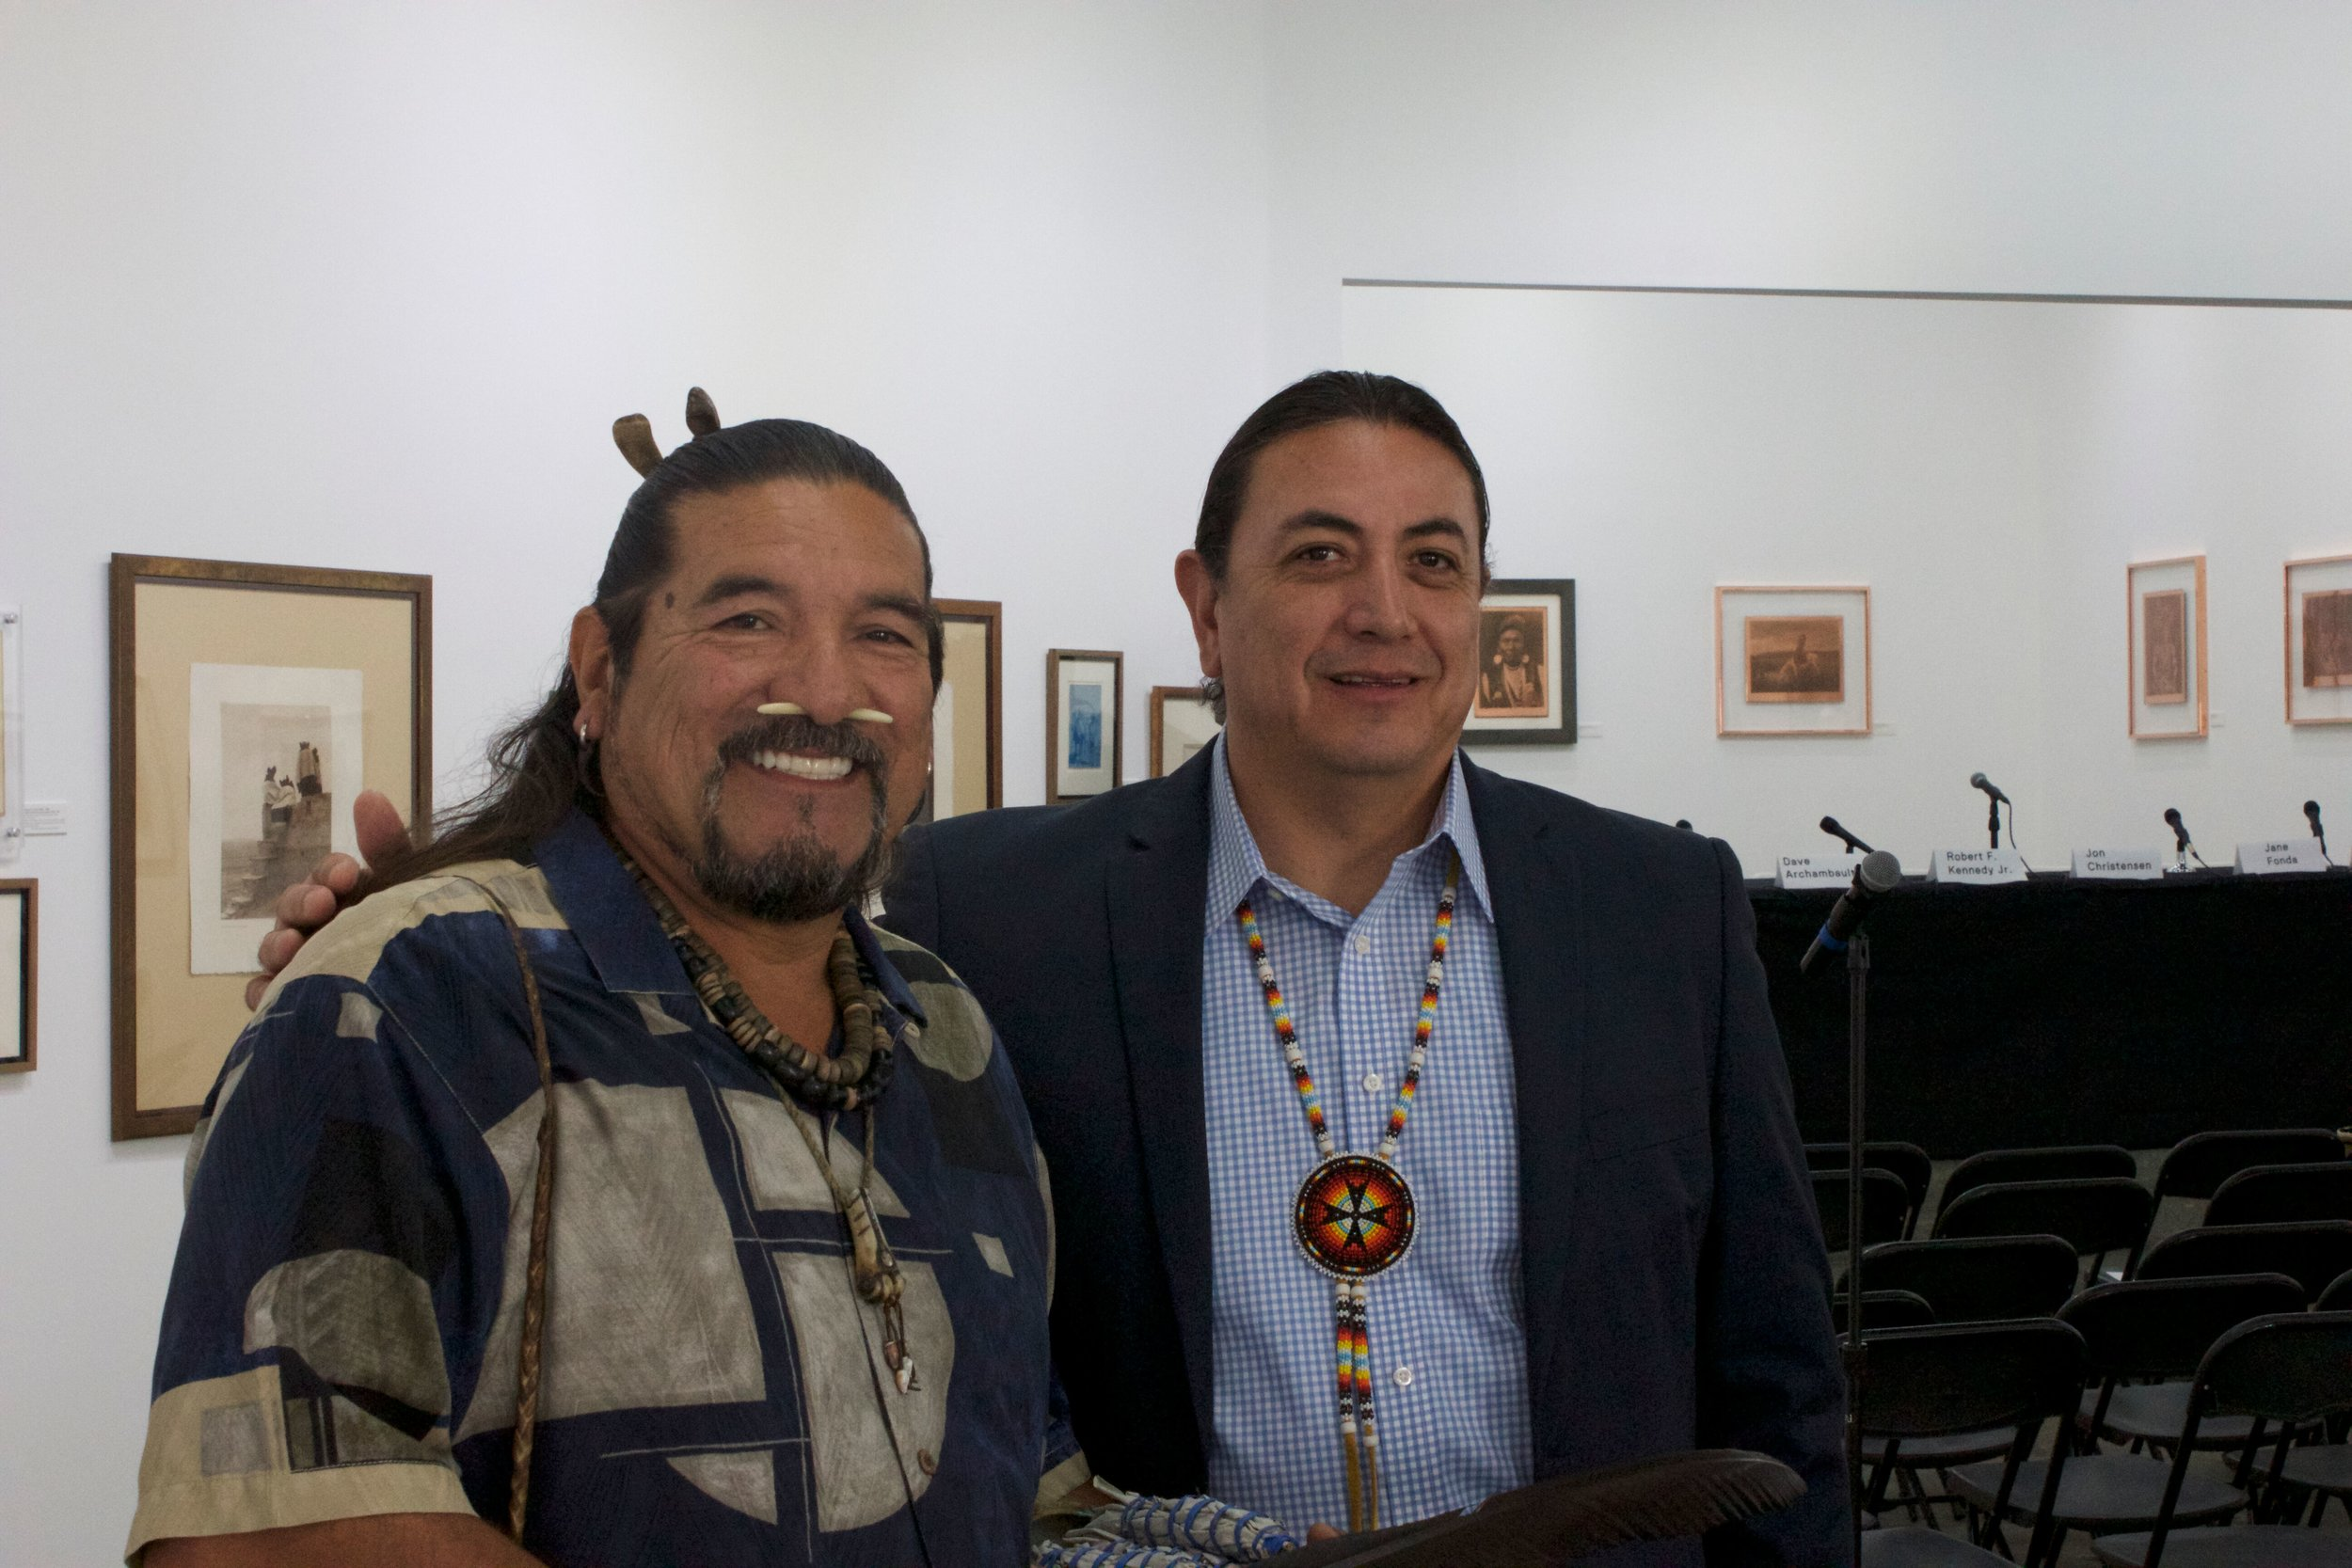 Mati Waiya, Chumash Ceremonial Elder and Executive Director of Wishtoyo Chumash Foundation and Standing Rock Sioux Tribal Chairman Dave Archambault II at the Depart Foundation.